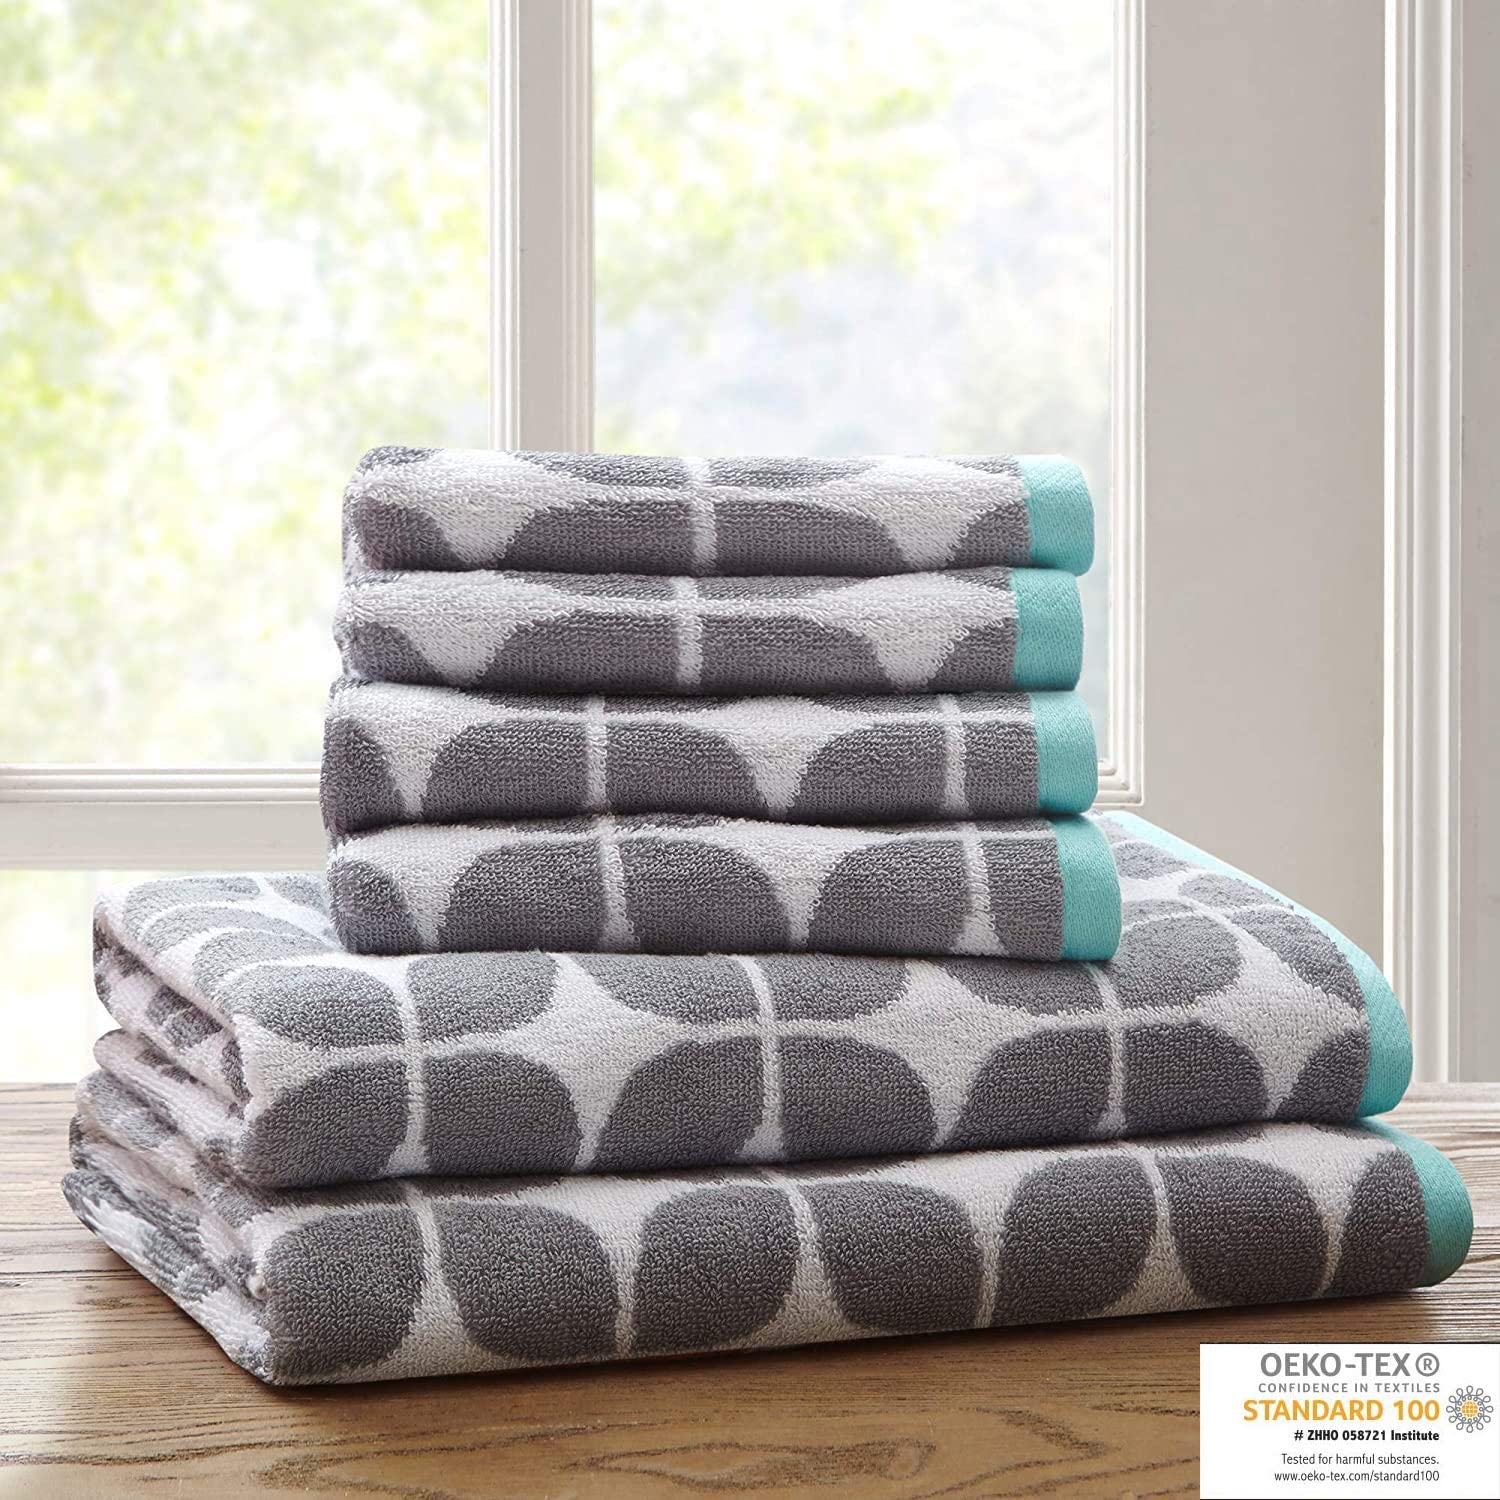 Lita Cotton Bathroom Towels Jacquard Absorbent Highly online shopping Tow Max 42% OFF Bath